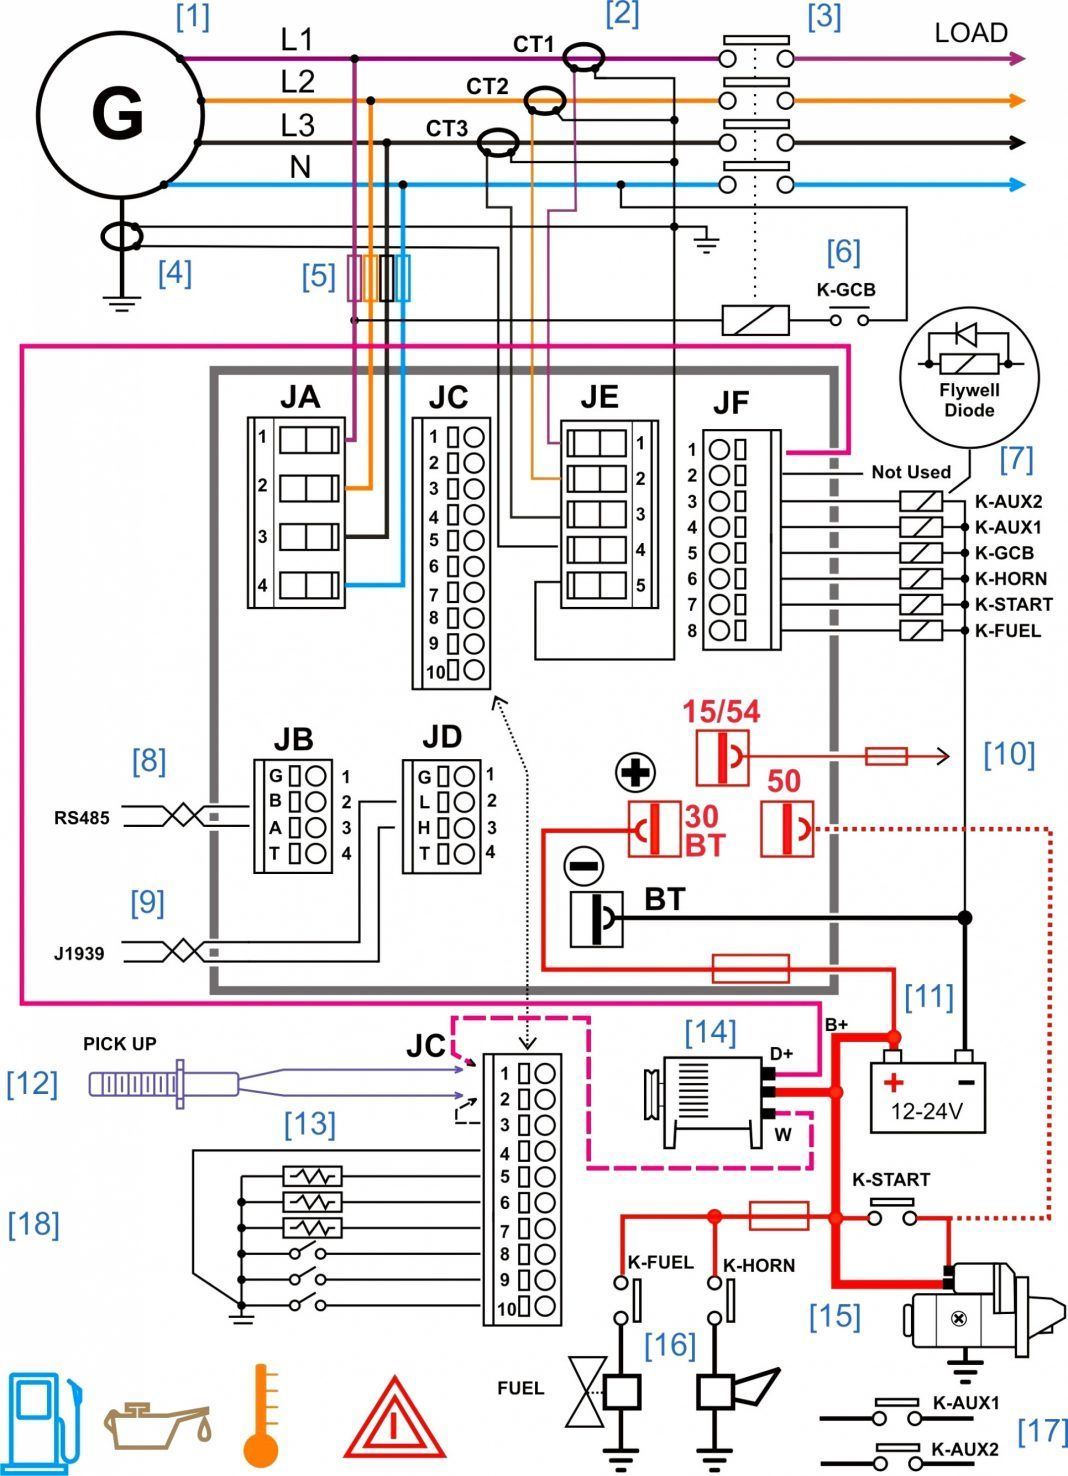 25 Complex Automotive Wiring Diagram Software For You